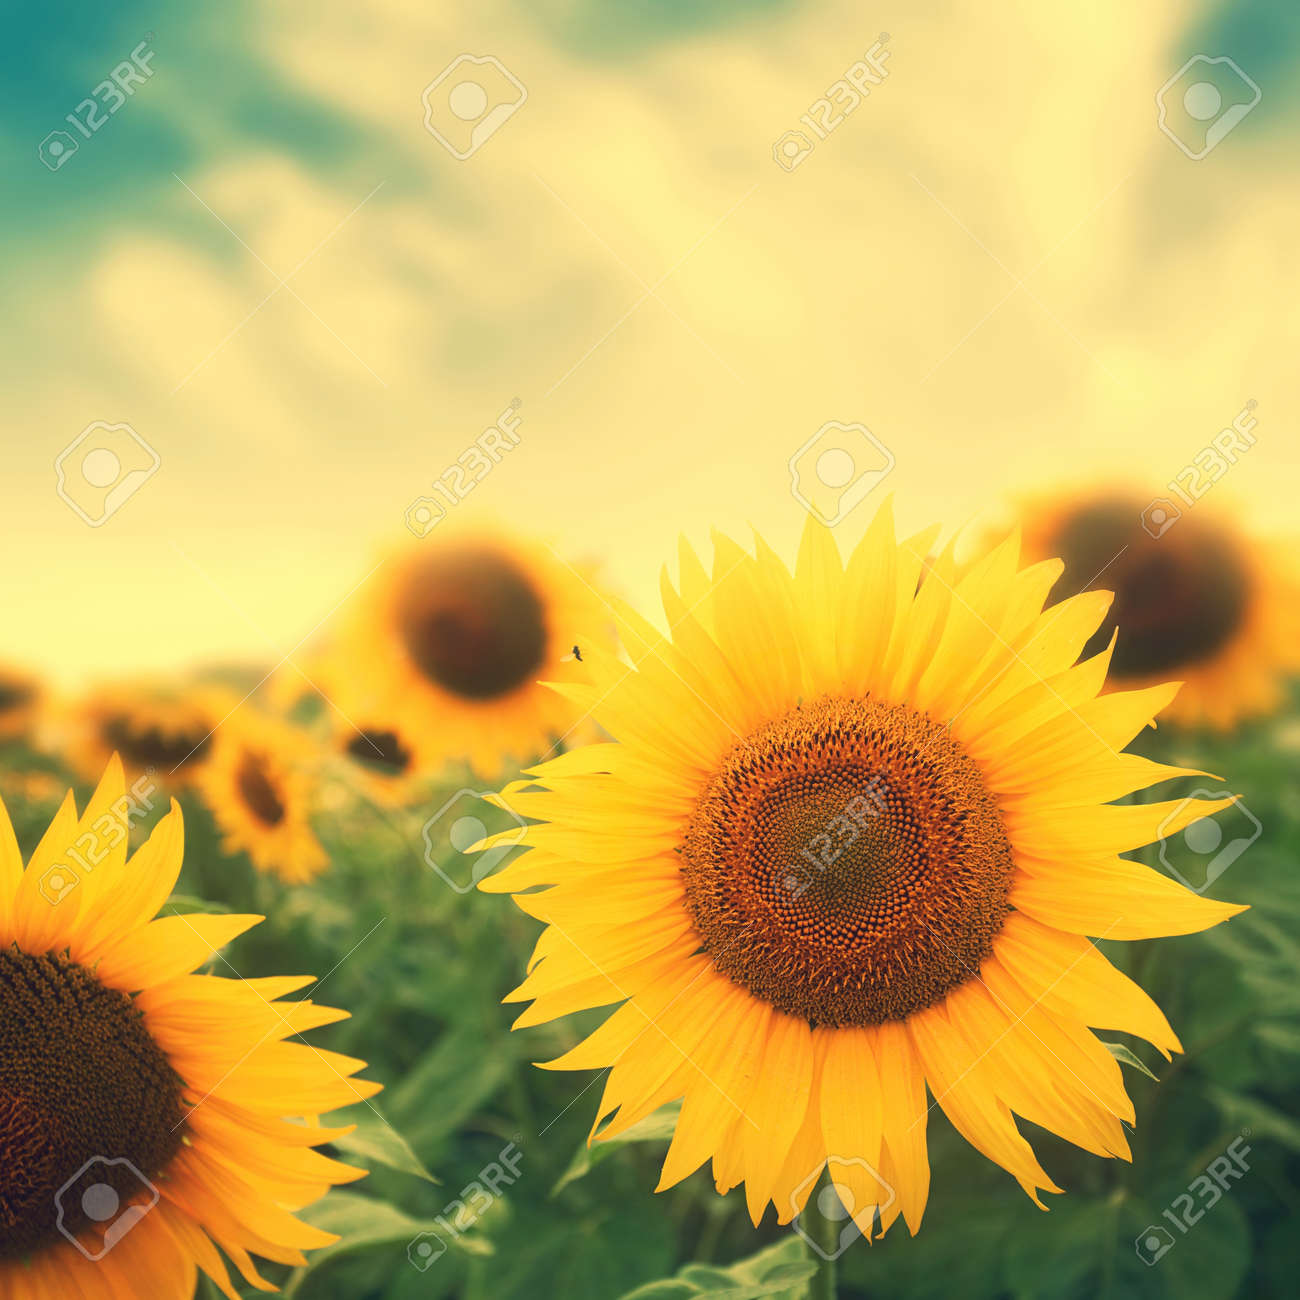 Sun Flowers In Field With Retro Colors Stock Photo Picture And